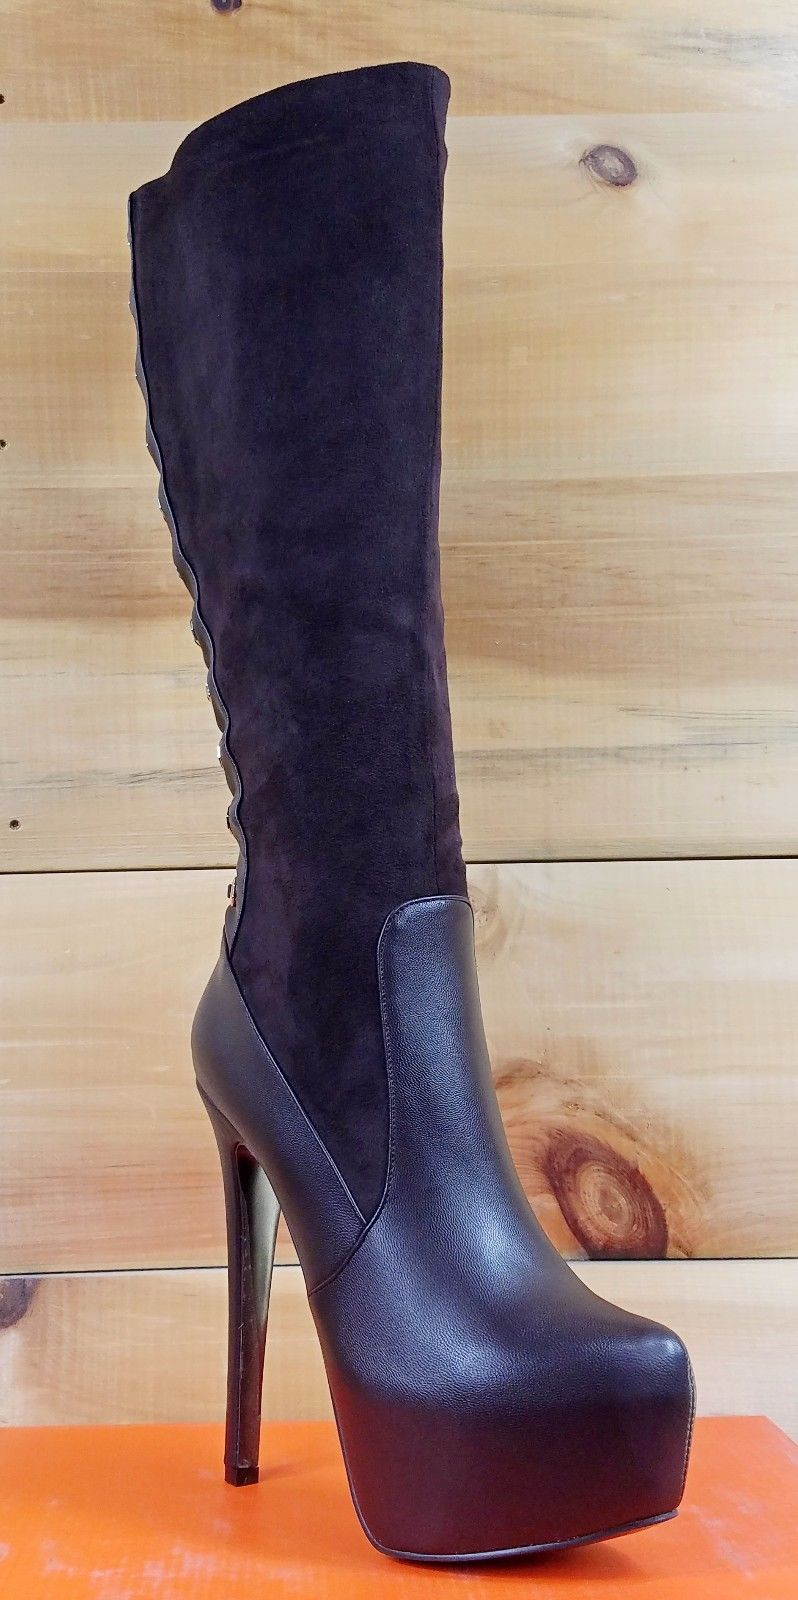 "Luichiny Ra Quelle Chocolate Brown 6"" Stiletto Heel Platform Knee Boot"